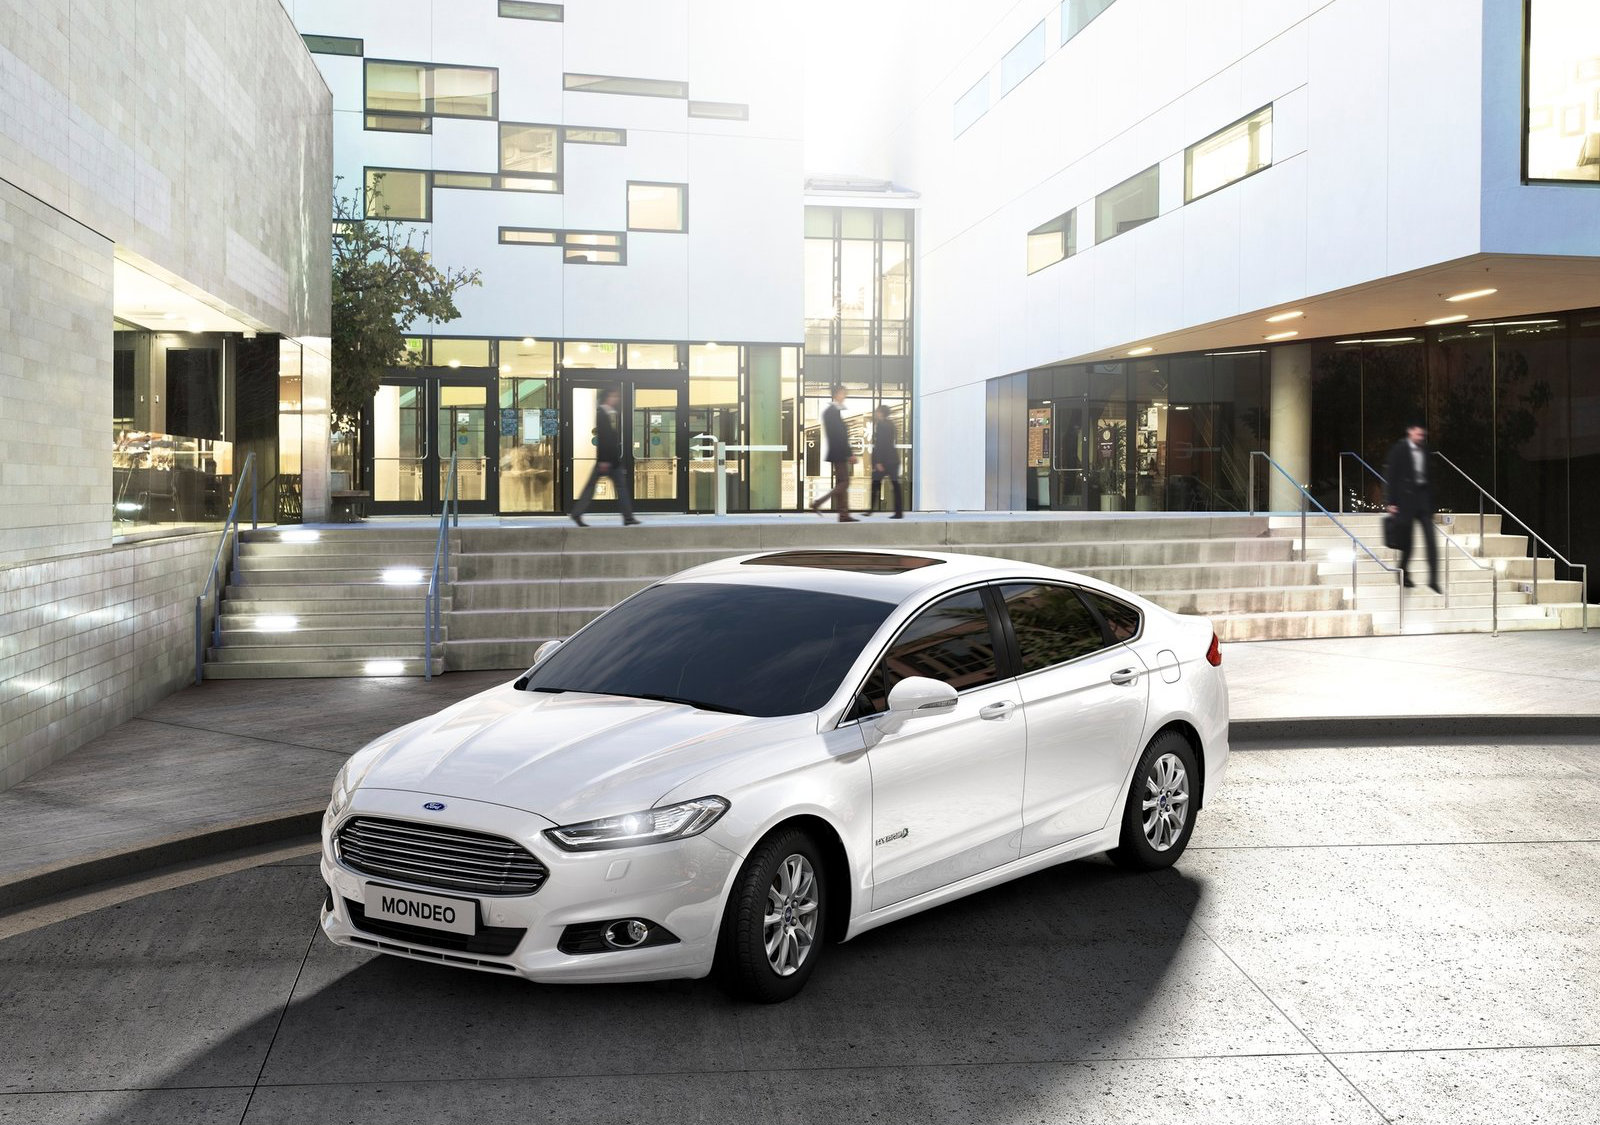 2015 ford mondeo hybrid entered production in spain pricing announced autoevolution. Black Bedroom Furniture Sets. Home Design Ideas